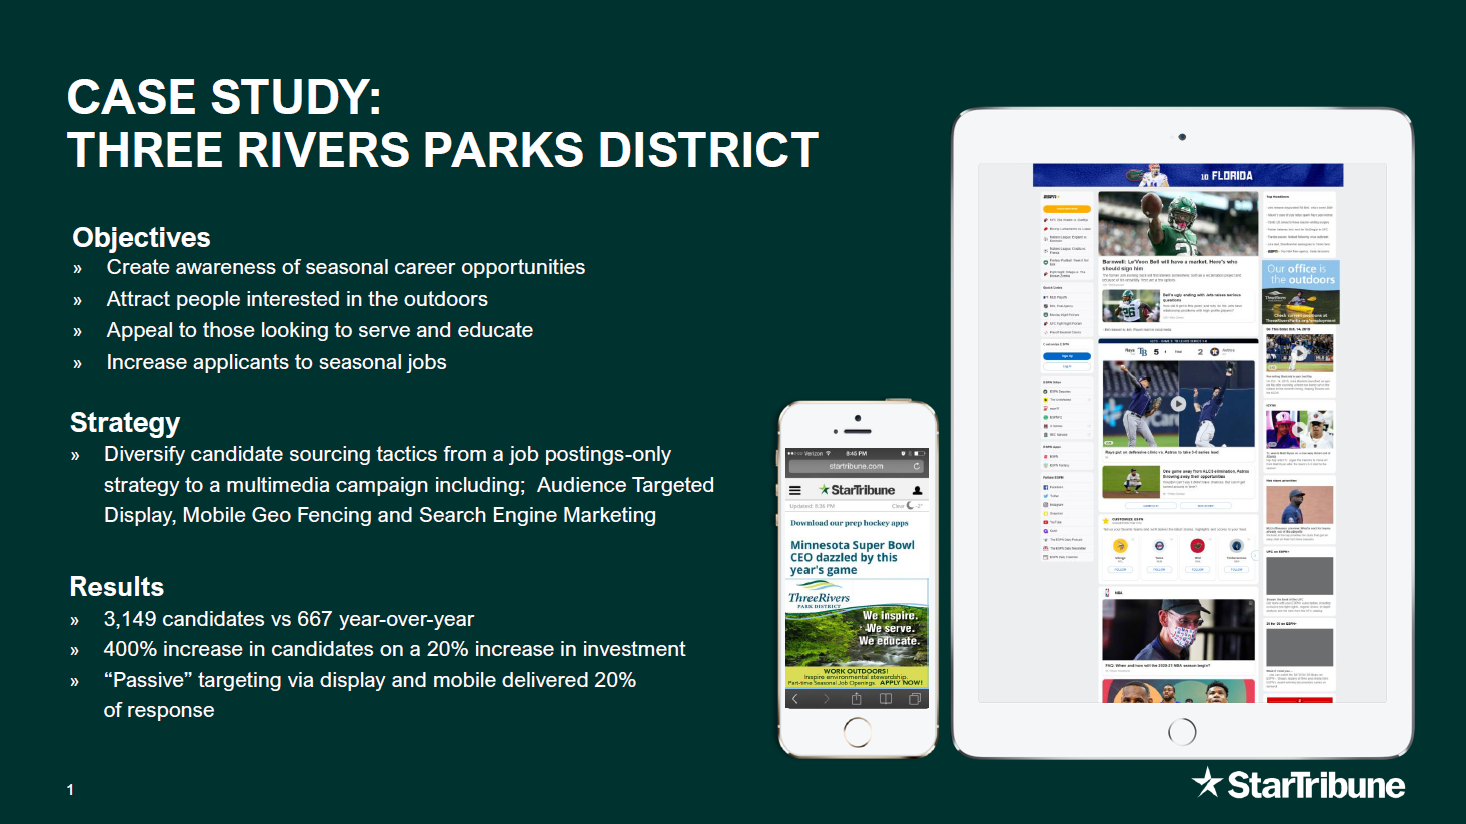 Case Study: Three Rivers Park District